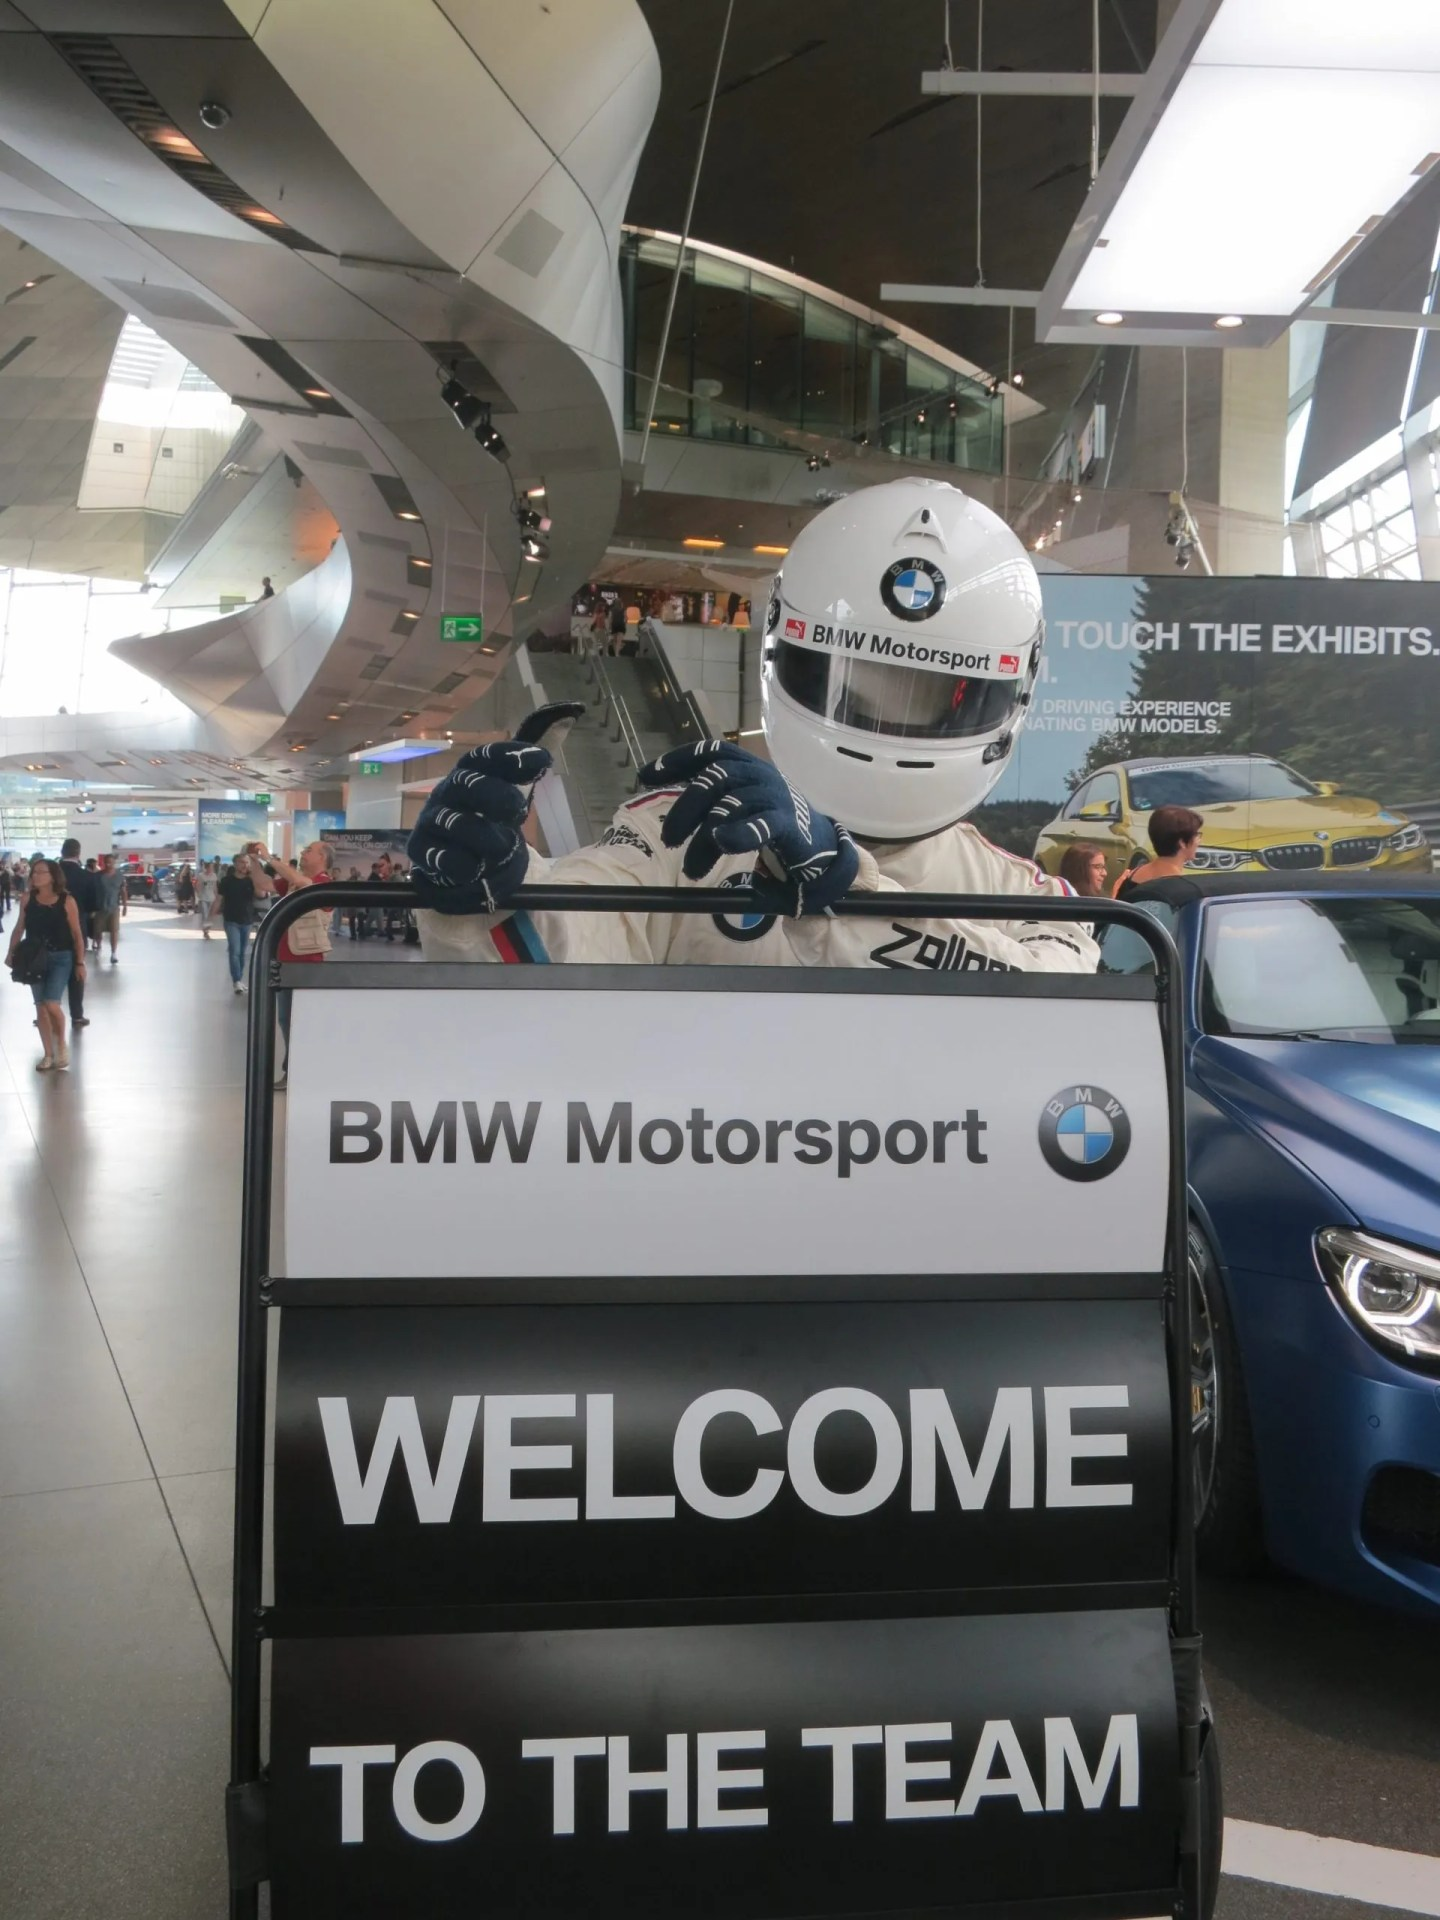 White helmeted racing driver welcome to BMW World and Museum